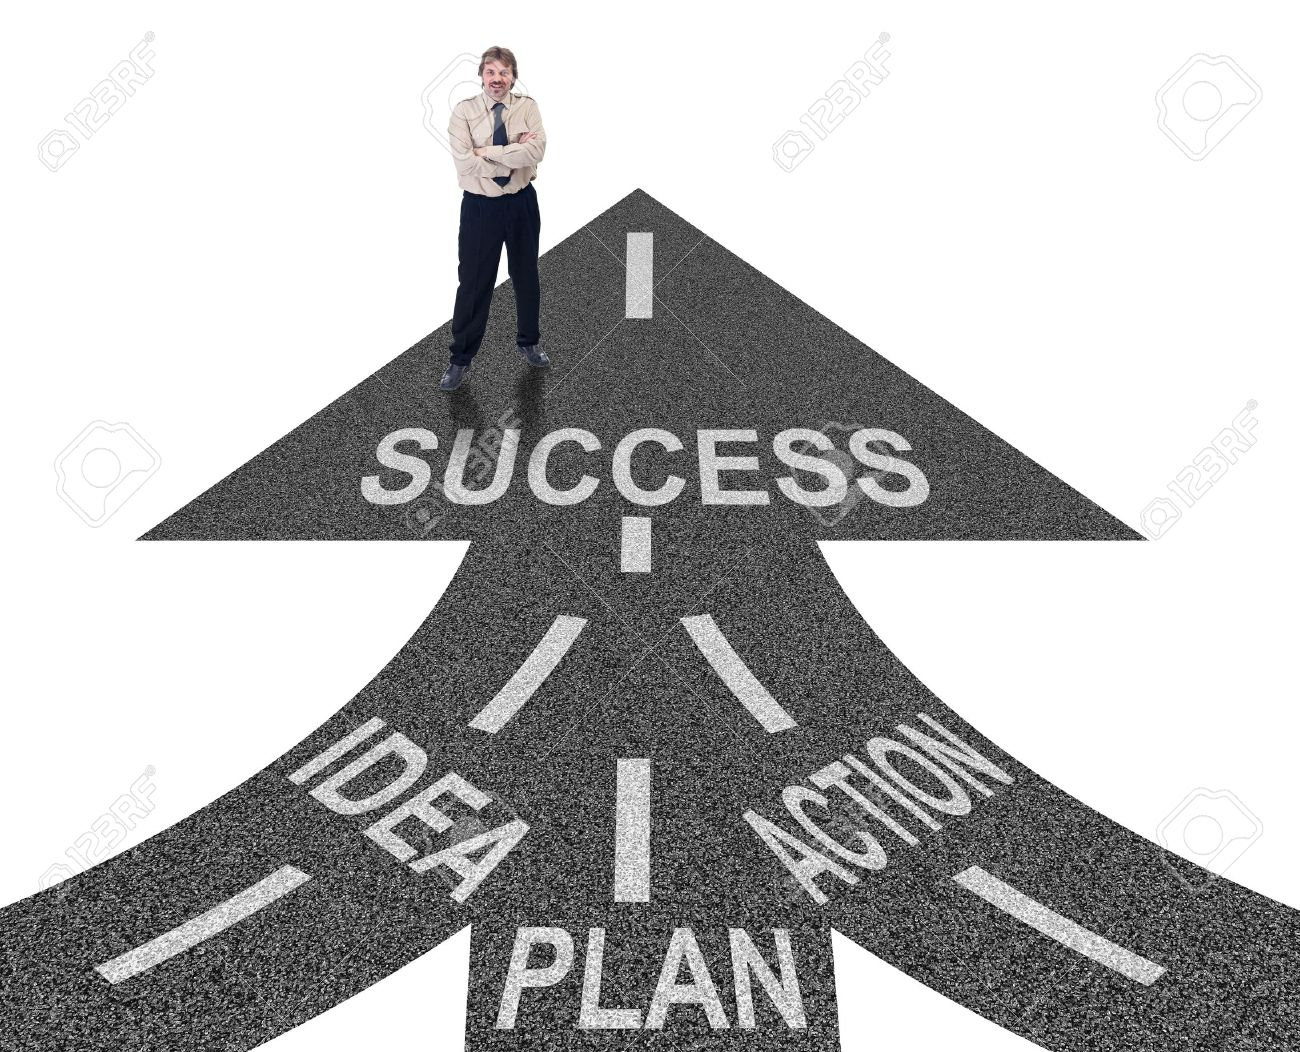 Road to success ingredients concept - idea, planning and action Stock Photo - 13109925